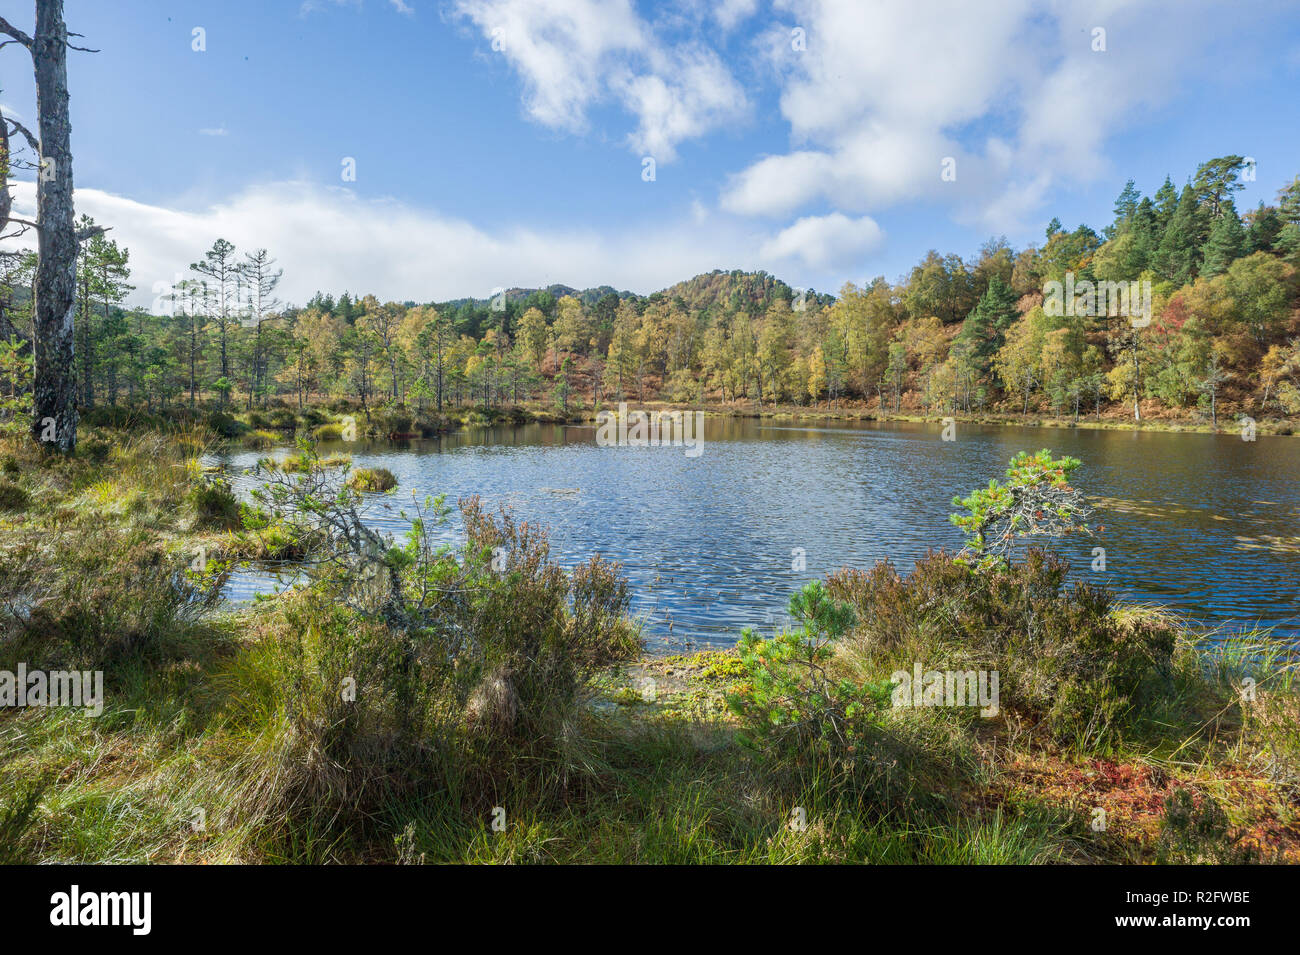 Coire loch on the viewpoint trail in Glen Affric, Highlands, Scotland. - Stock Image